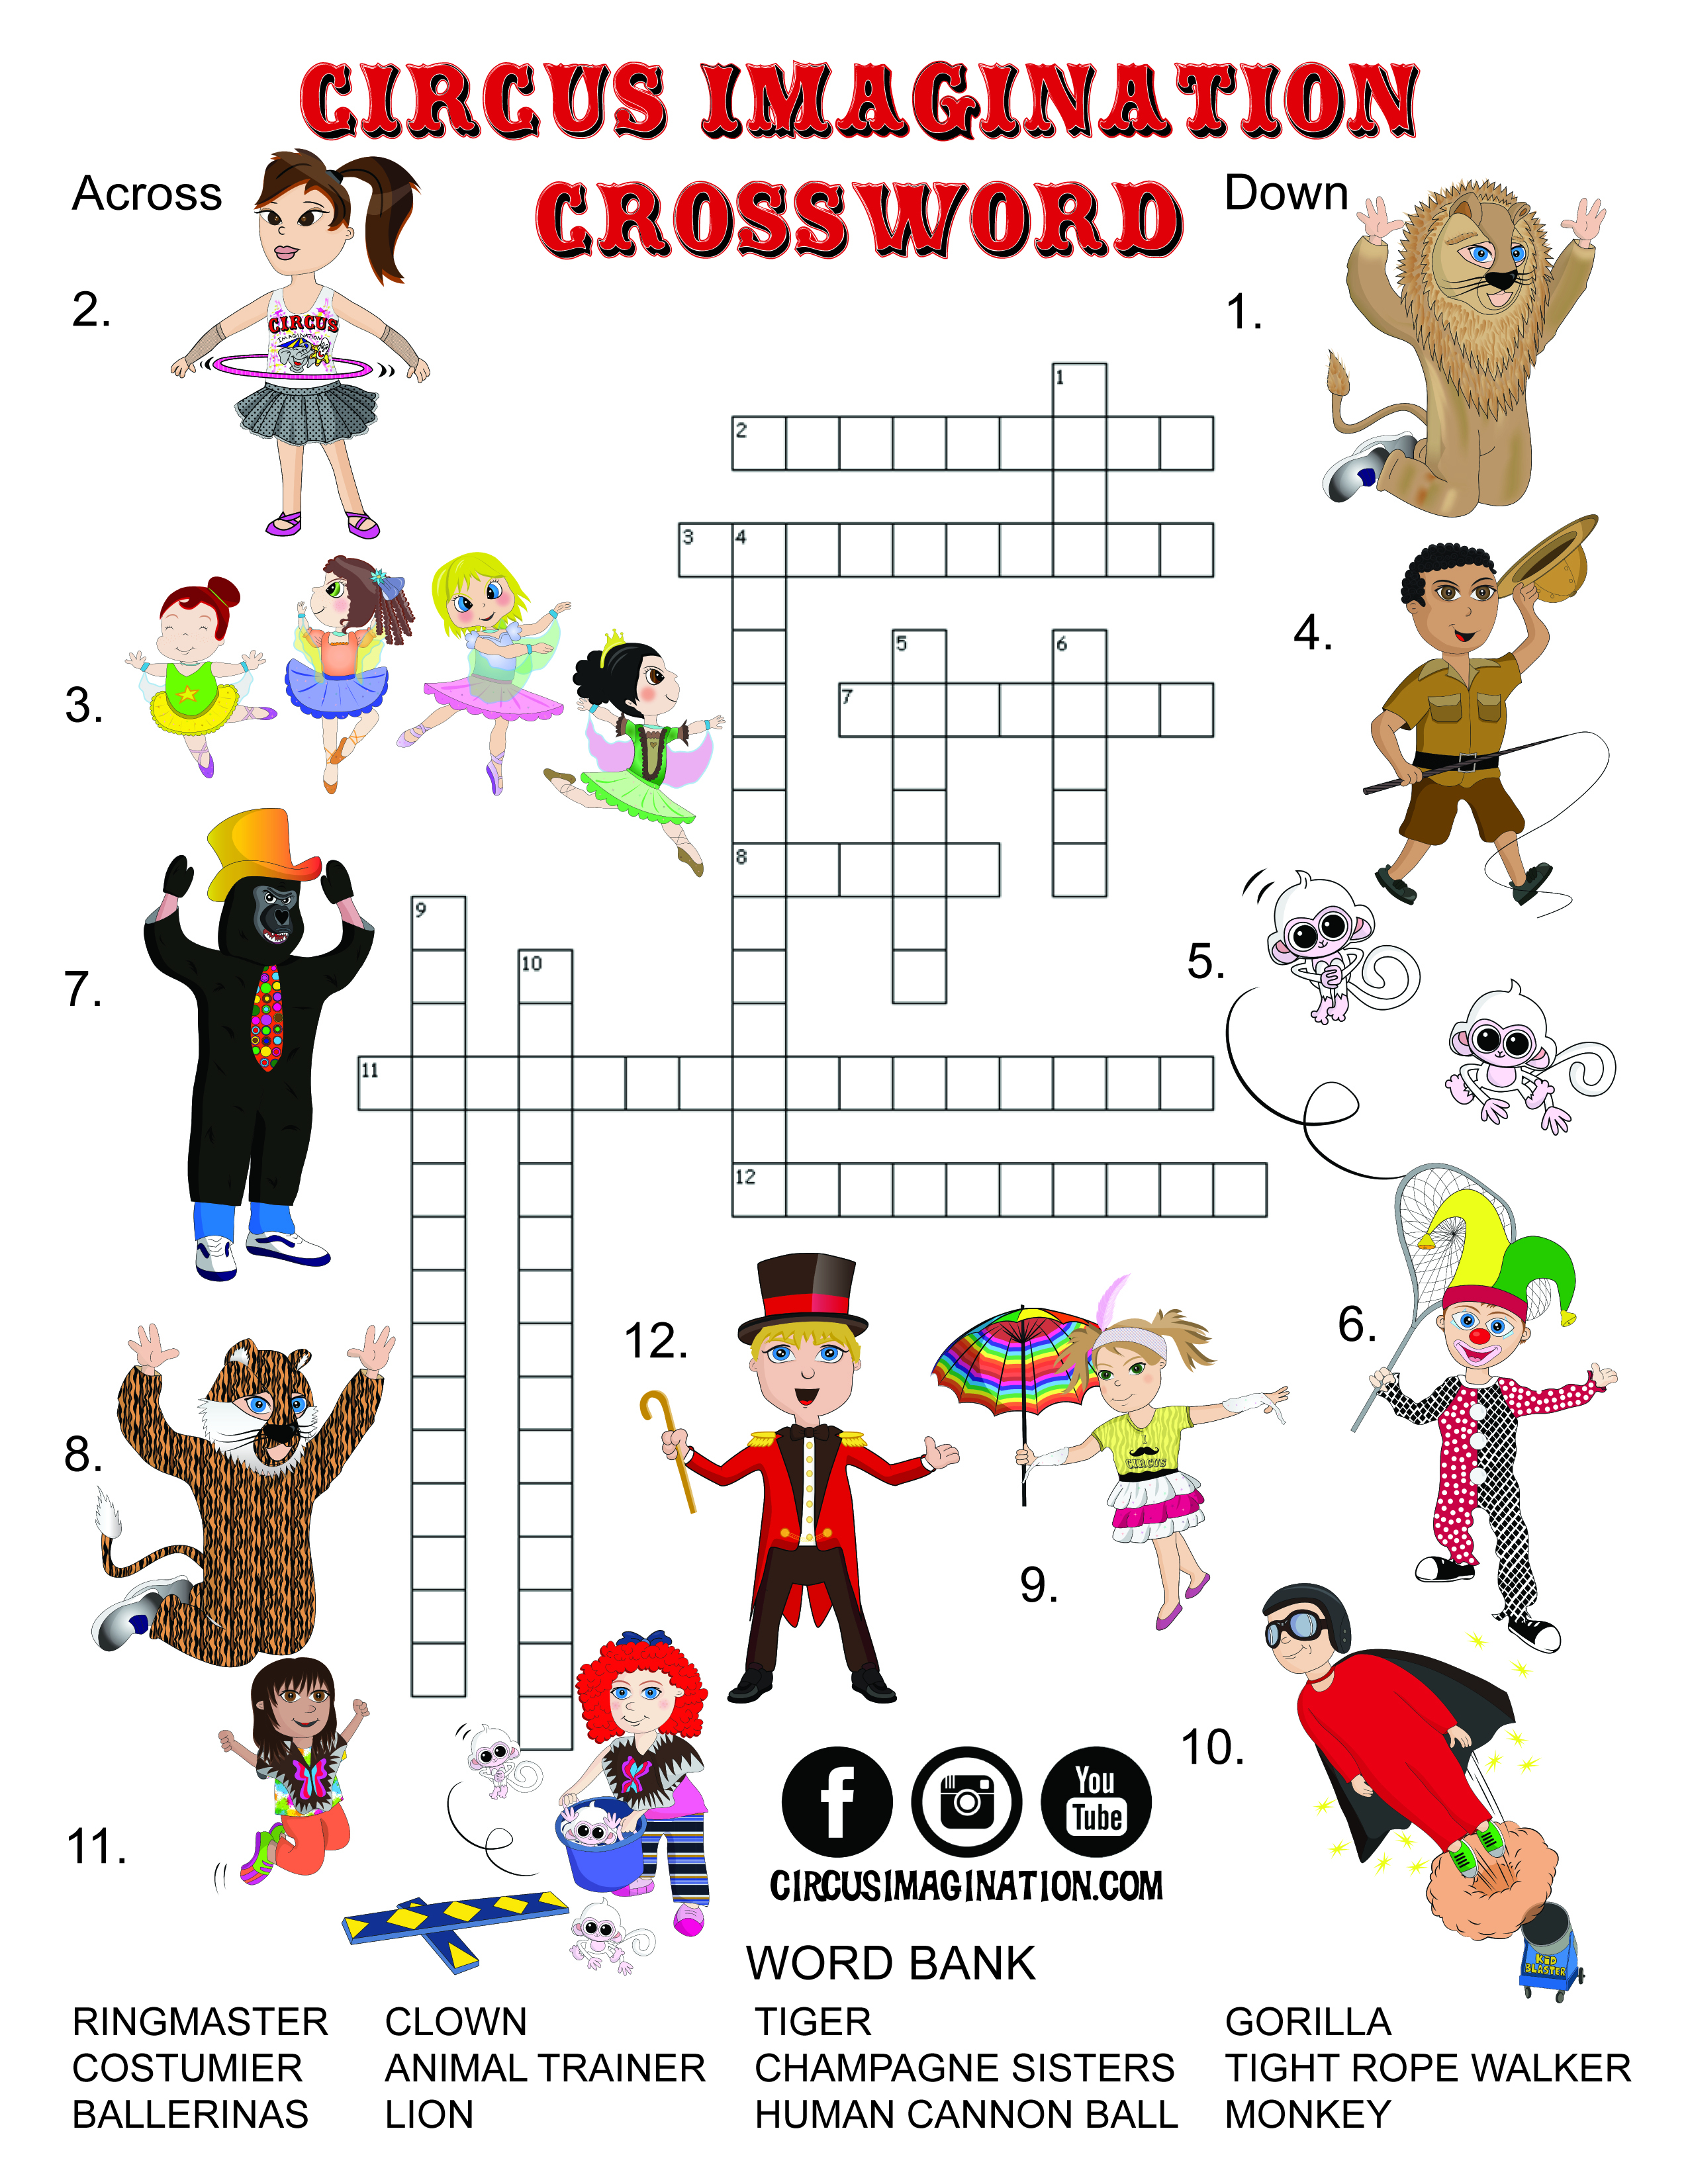 New! Exclusive Circus Printables! Coloring Pages And Crossword - Circus Crossword Puzzle Printables